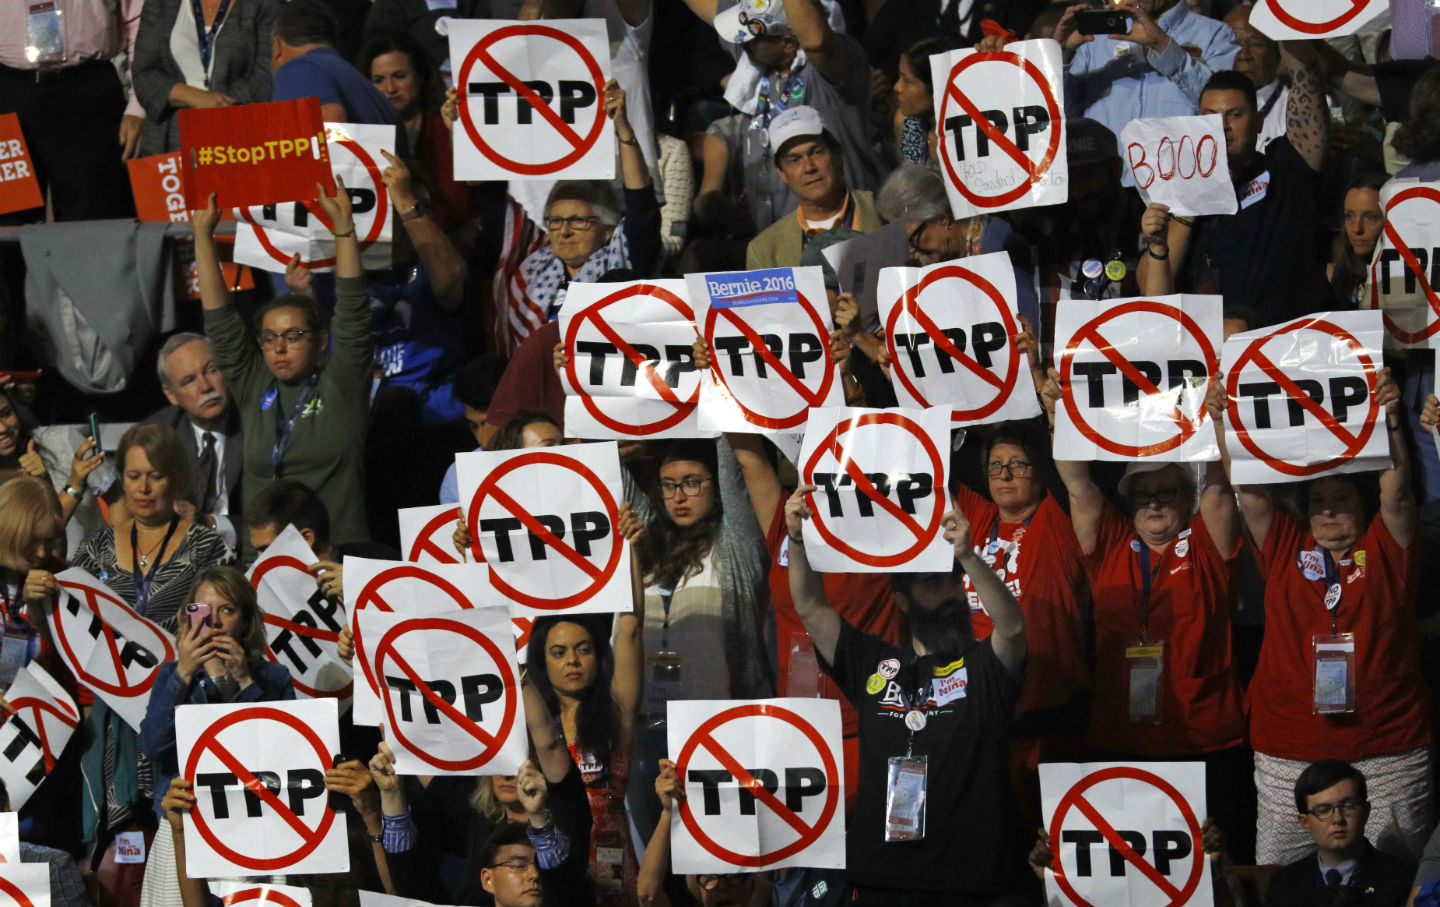 Stop TPP signs